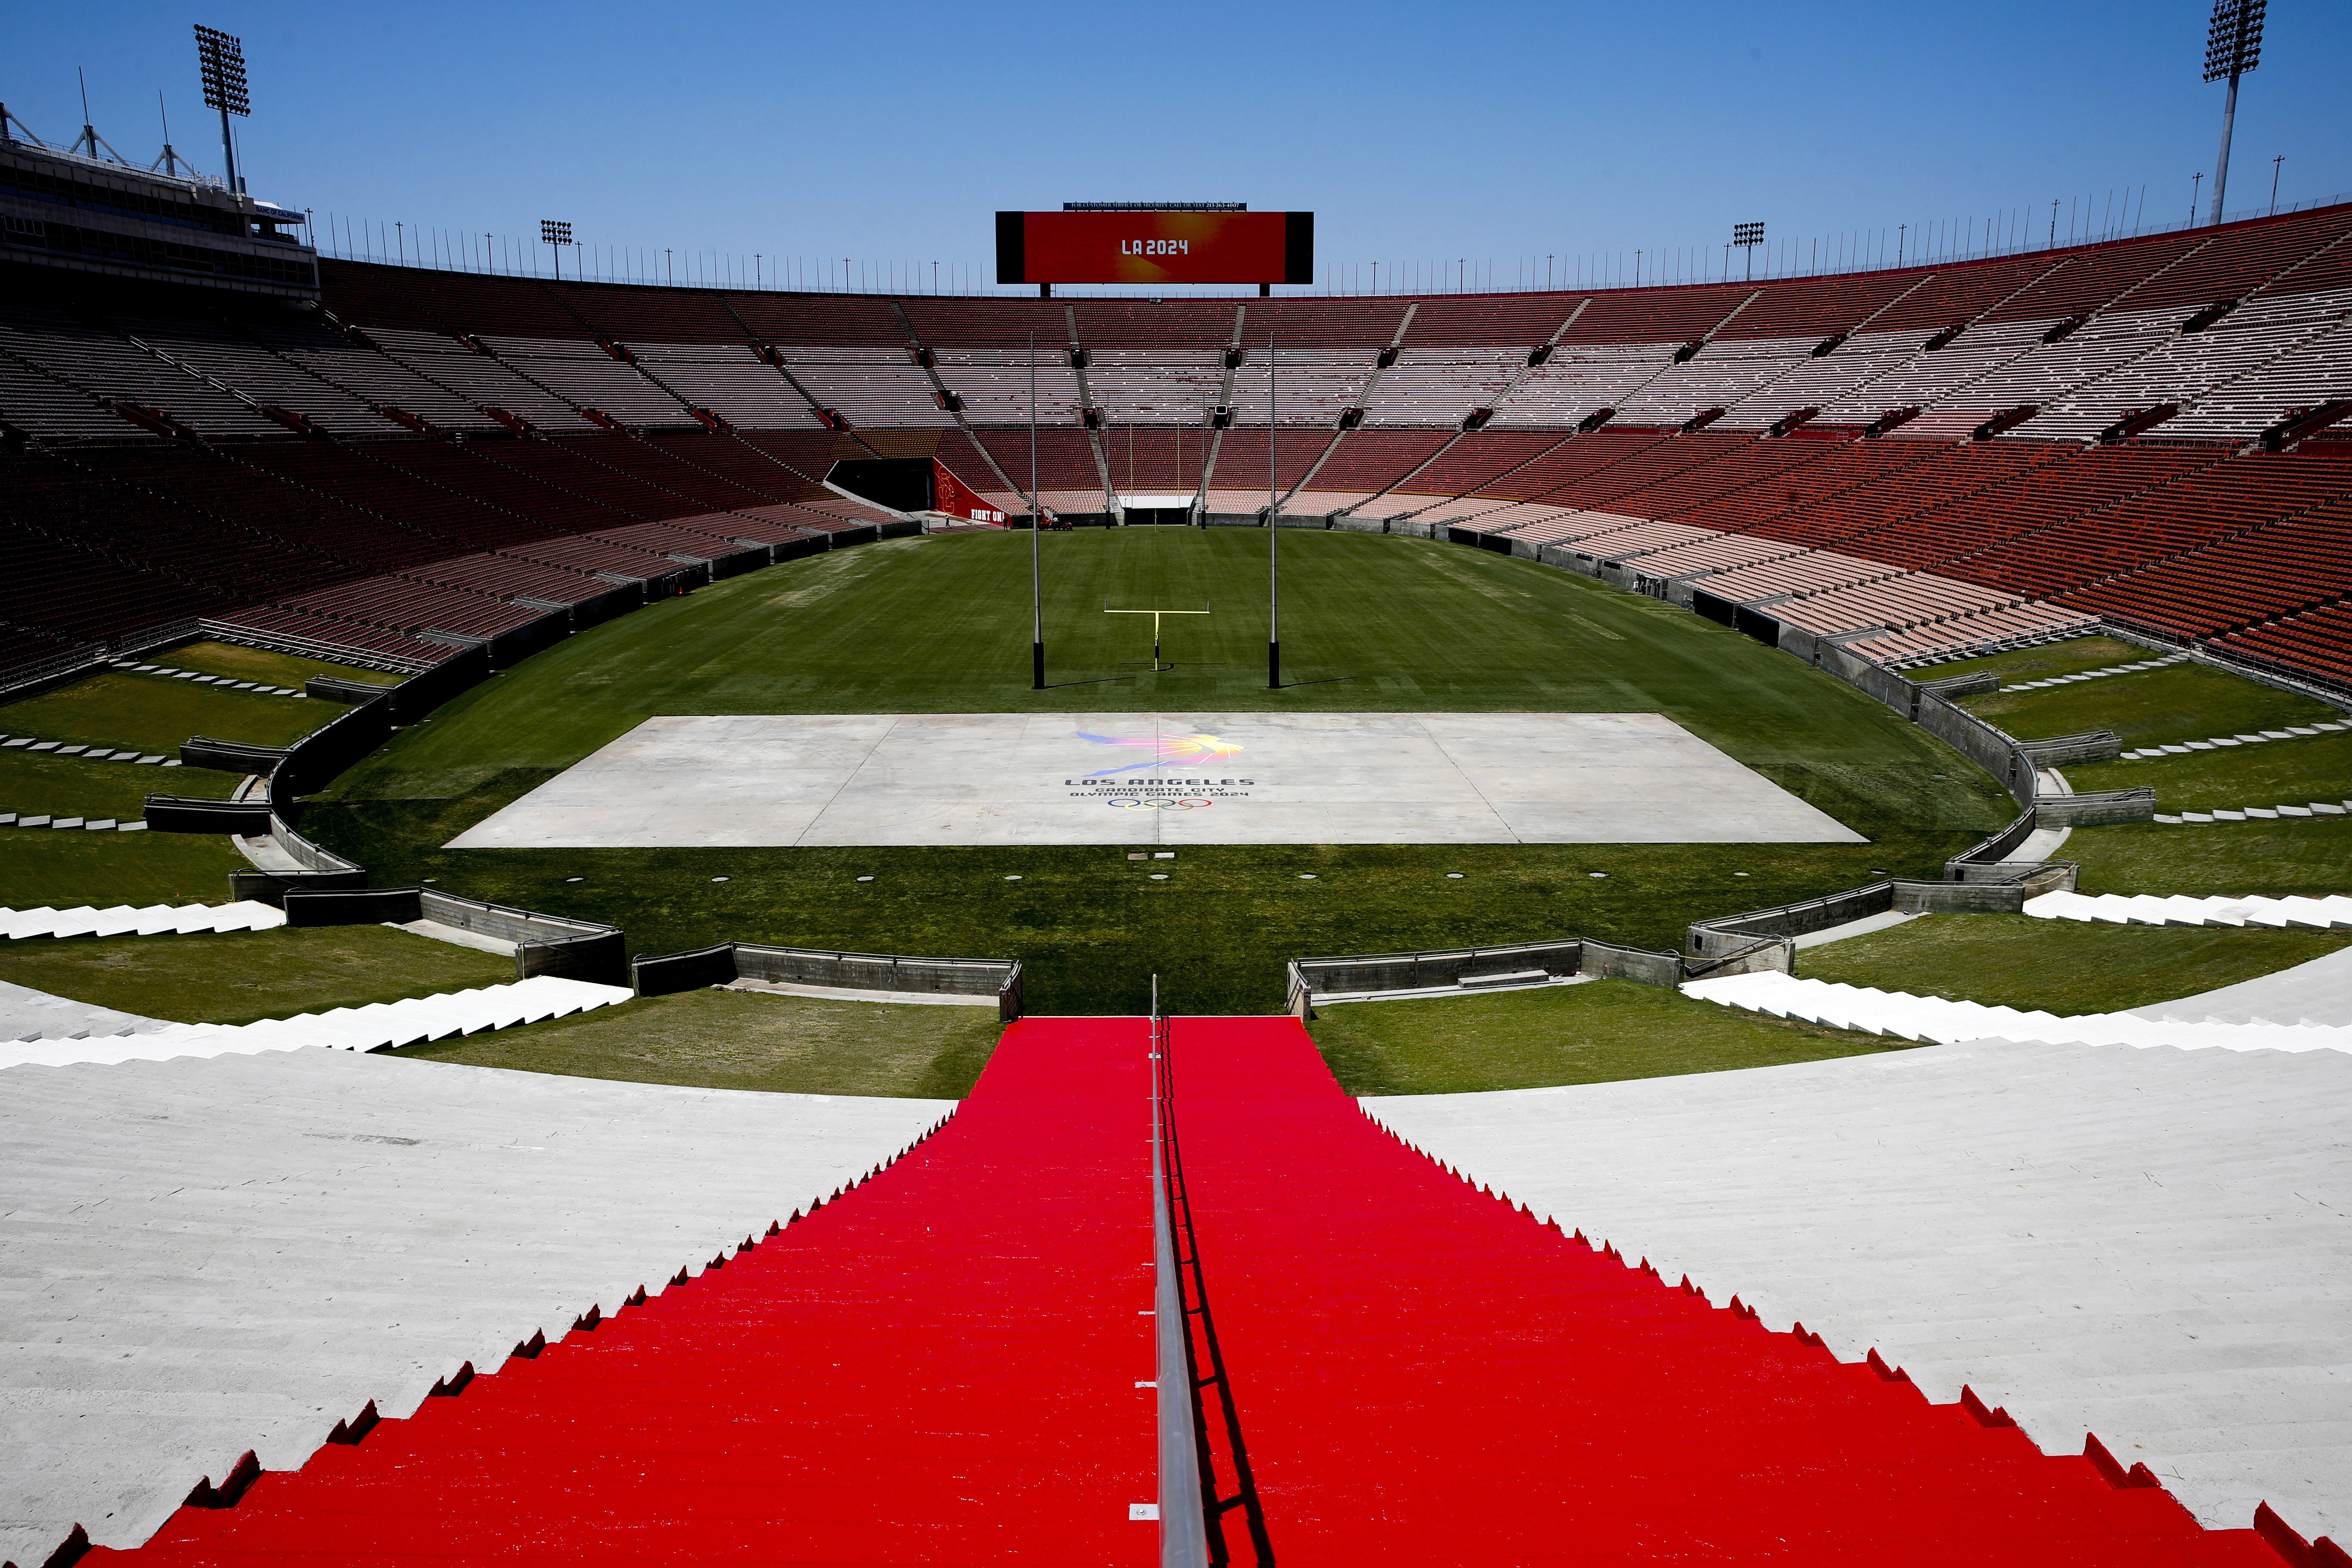 FILE - In this May 11, 2017, file photo, Los Angeles Memorial Coliseum, the venue proposed for Olympic opening and closing ceremonies and track and field events. stands in Los Angeles. The Los Angeles City Council is expected Friday, Aug. 11, 2017 to endo